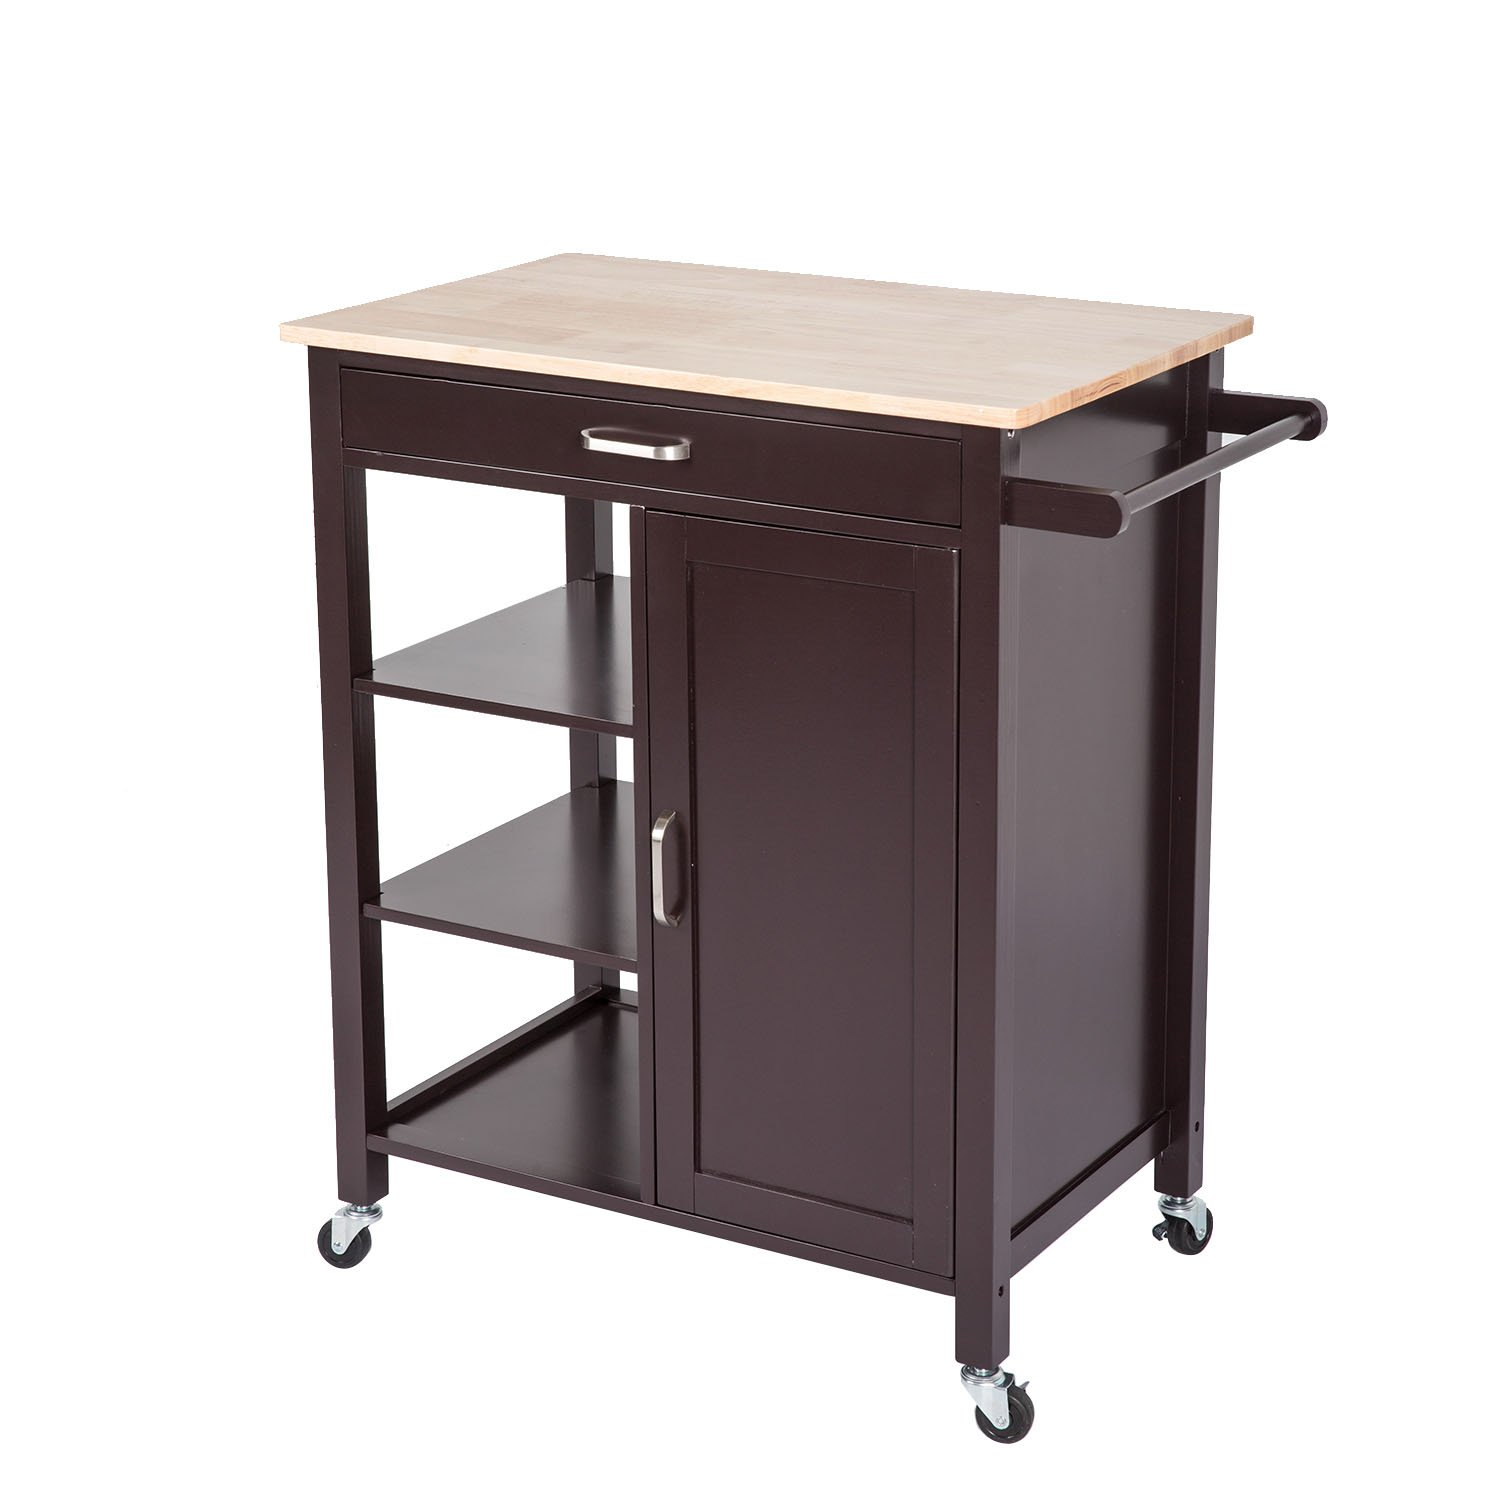 Kinsuite Kitchen Island Trolley Cart with Wheels 4-Tier Utility Wood Rolling Kitchen Storage Cabinet with Drawer Towel Bar Shelves Wooden top Table Dark Brown by Kinsuite